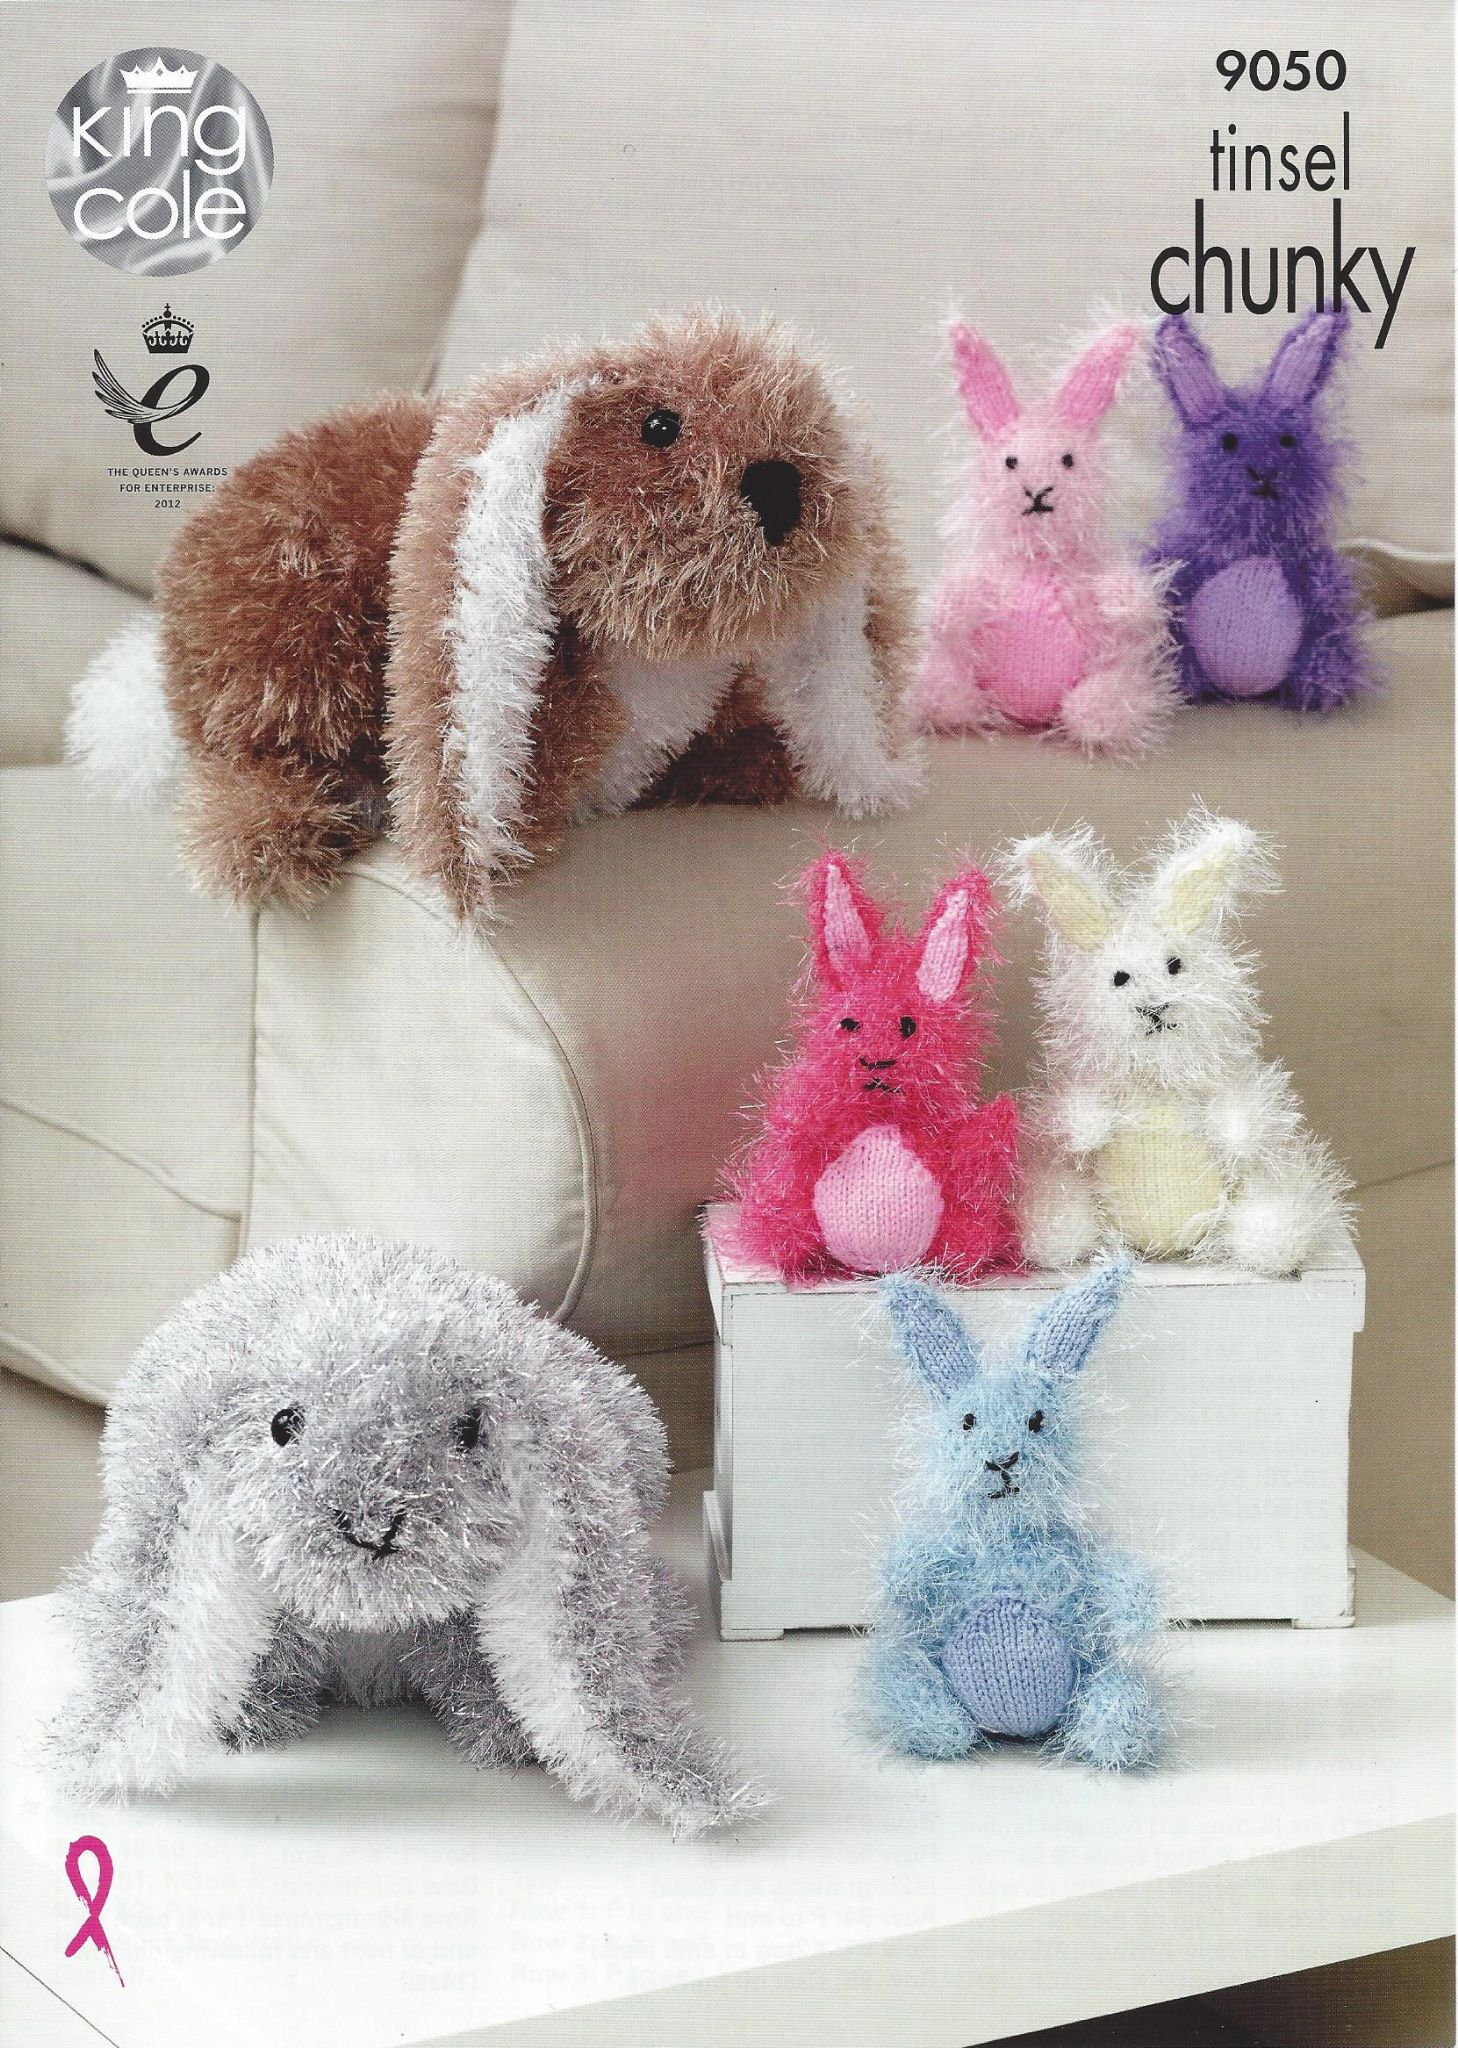 King Cole Tinsel Chunky - 9050 Rabbits Knitting Pattern